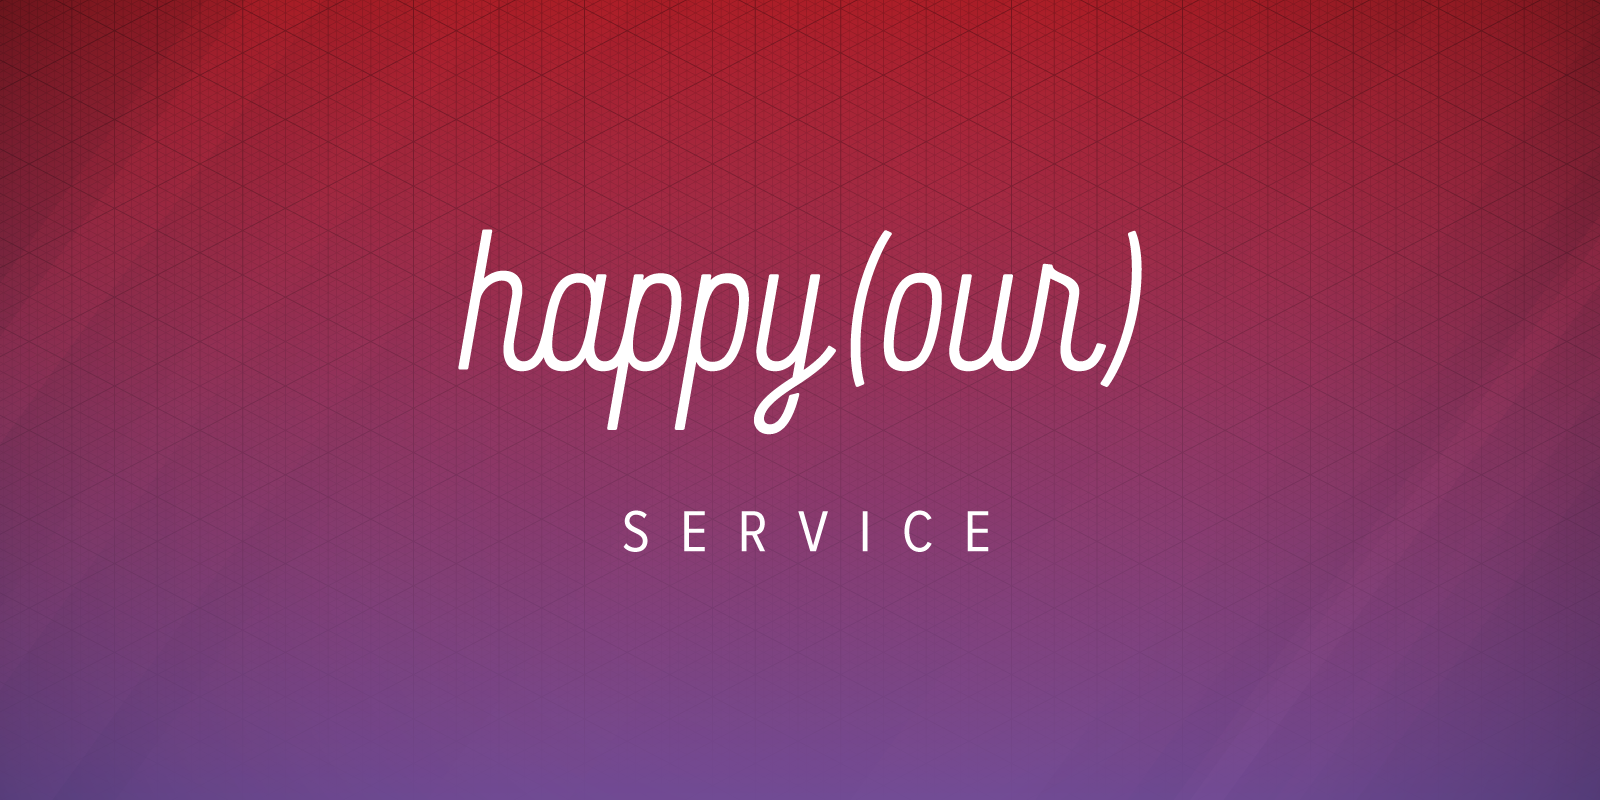 Happy(our): Service